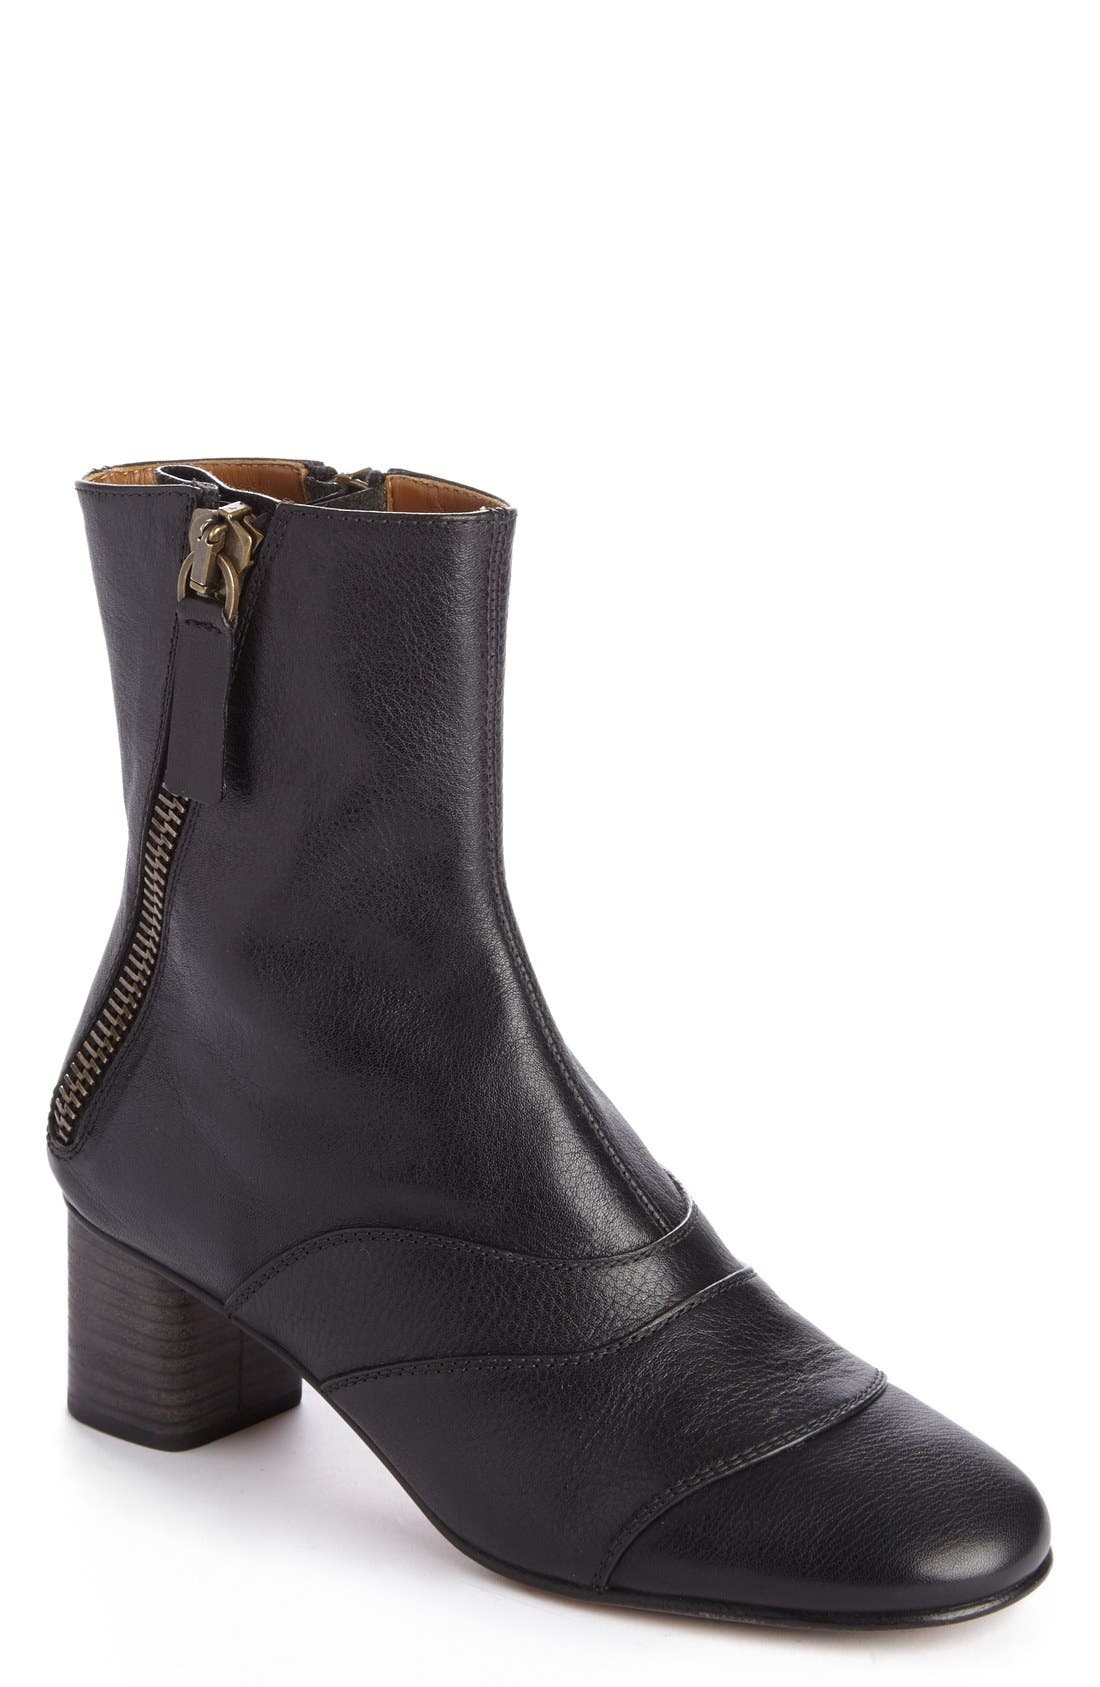 CHLOÉ 'Lexie' Block Heel Boot